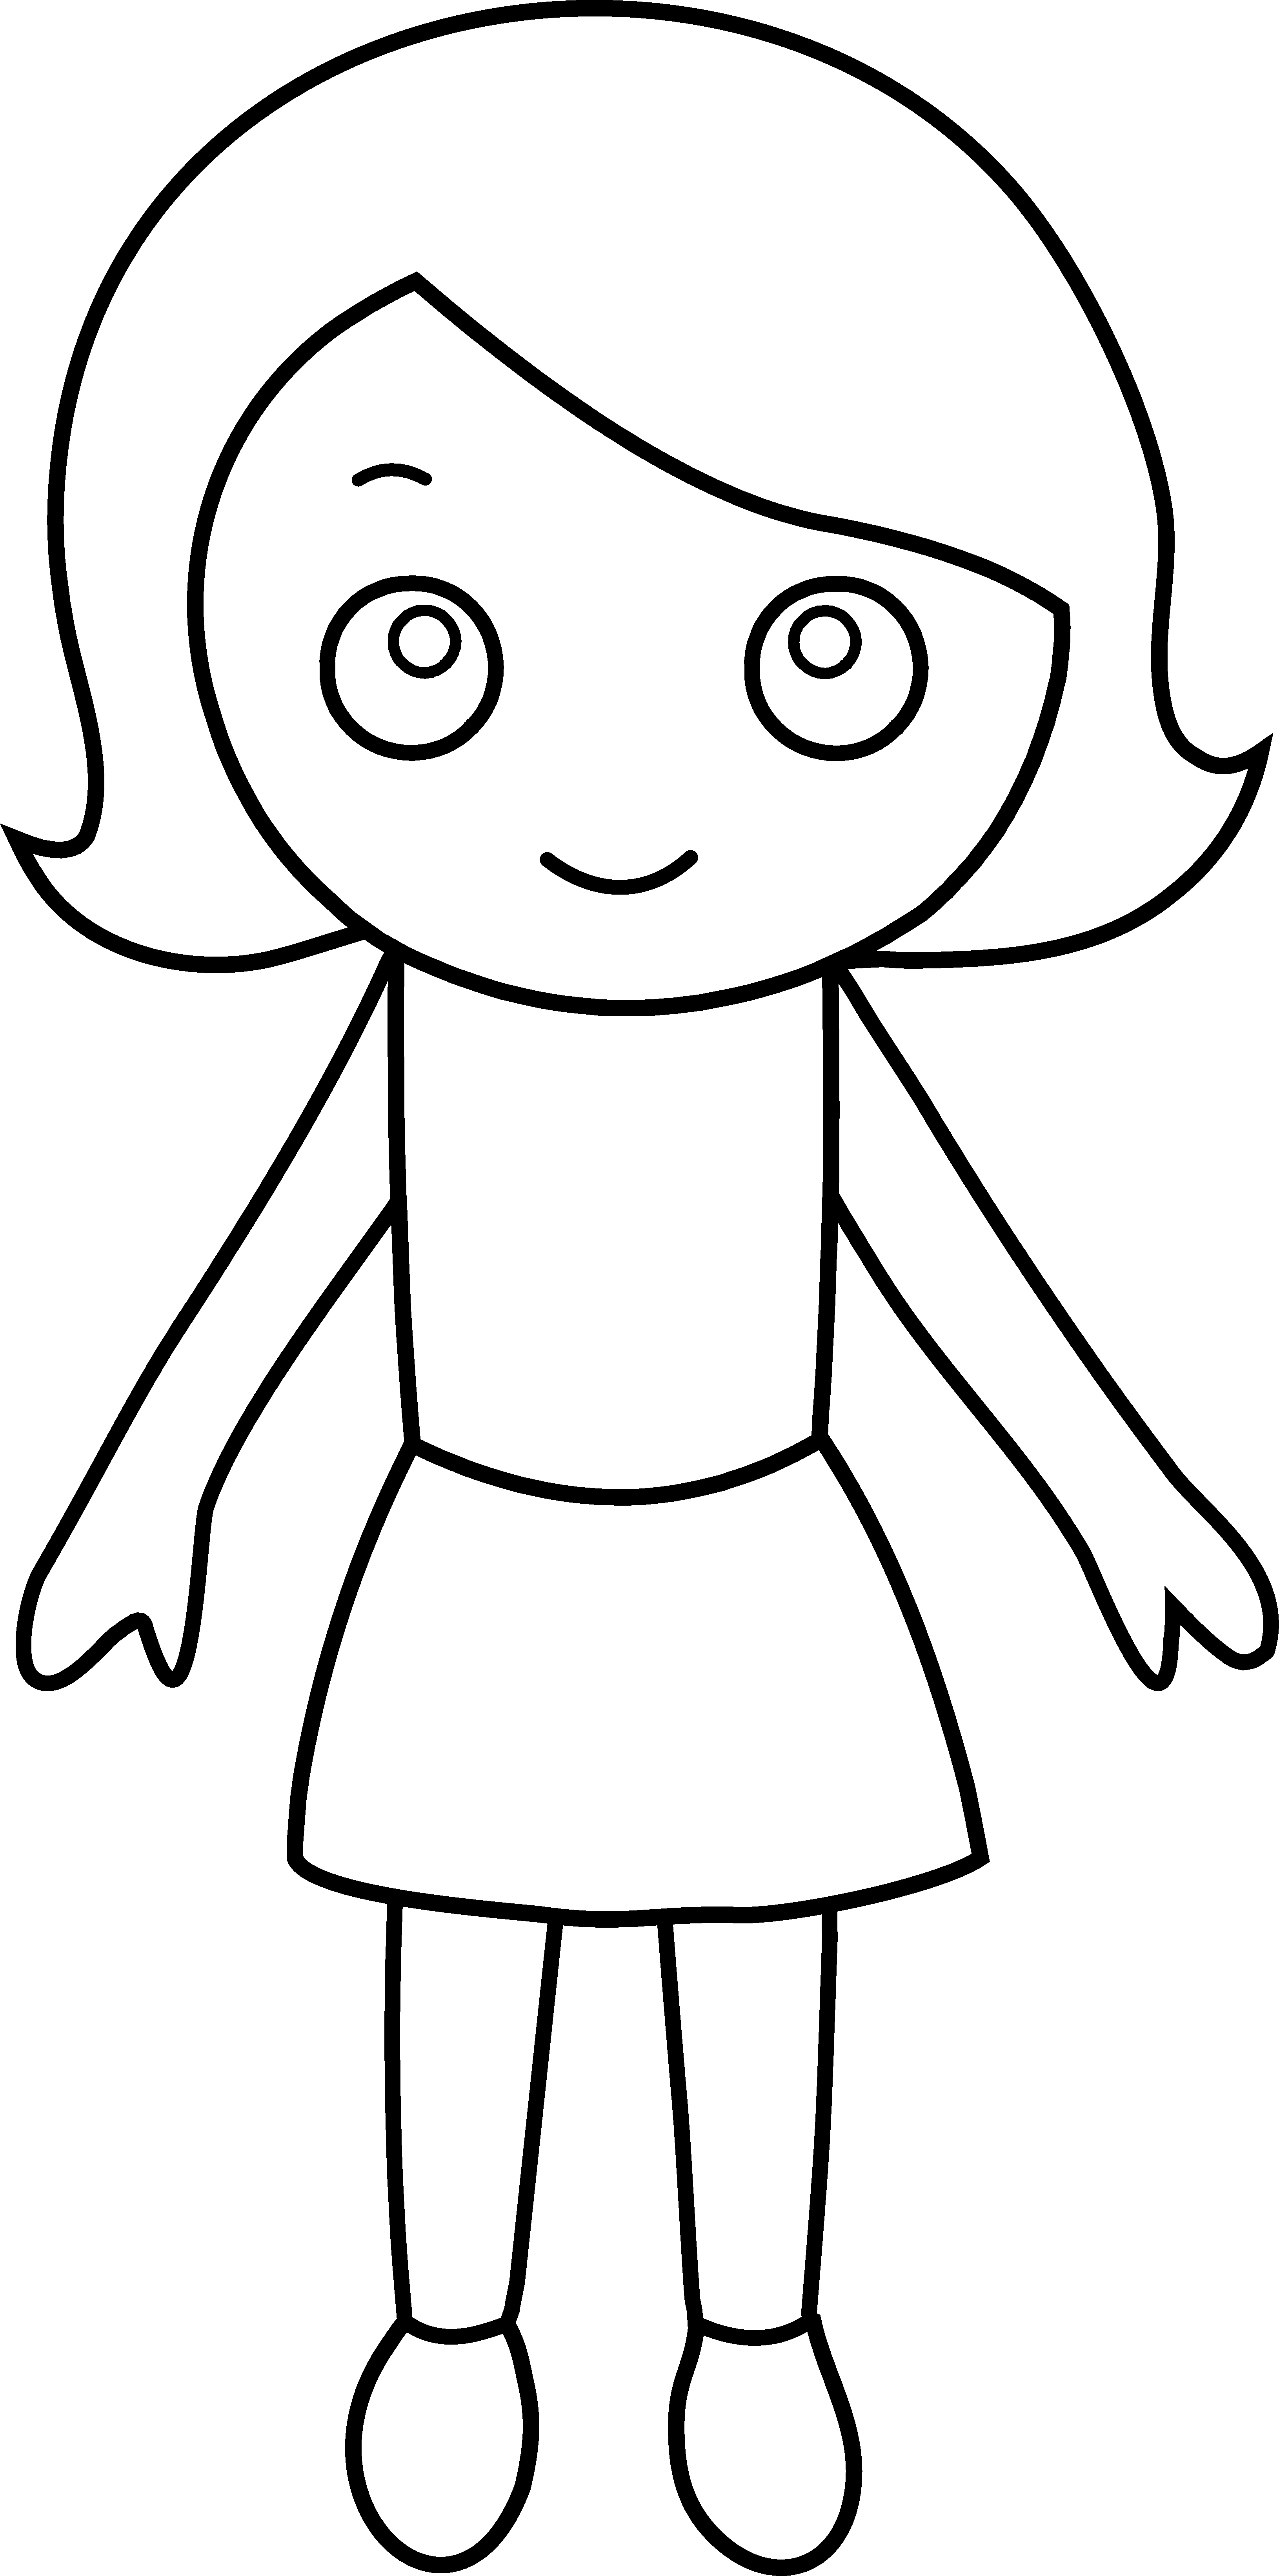 outline pictures to colour butterfly outline printable coloring home colour to pictures outline